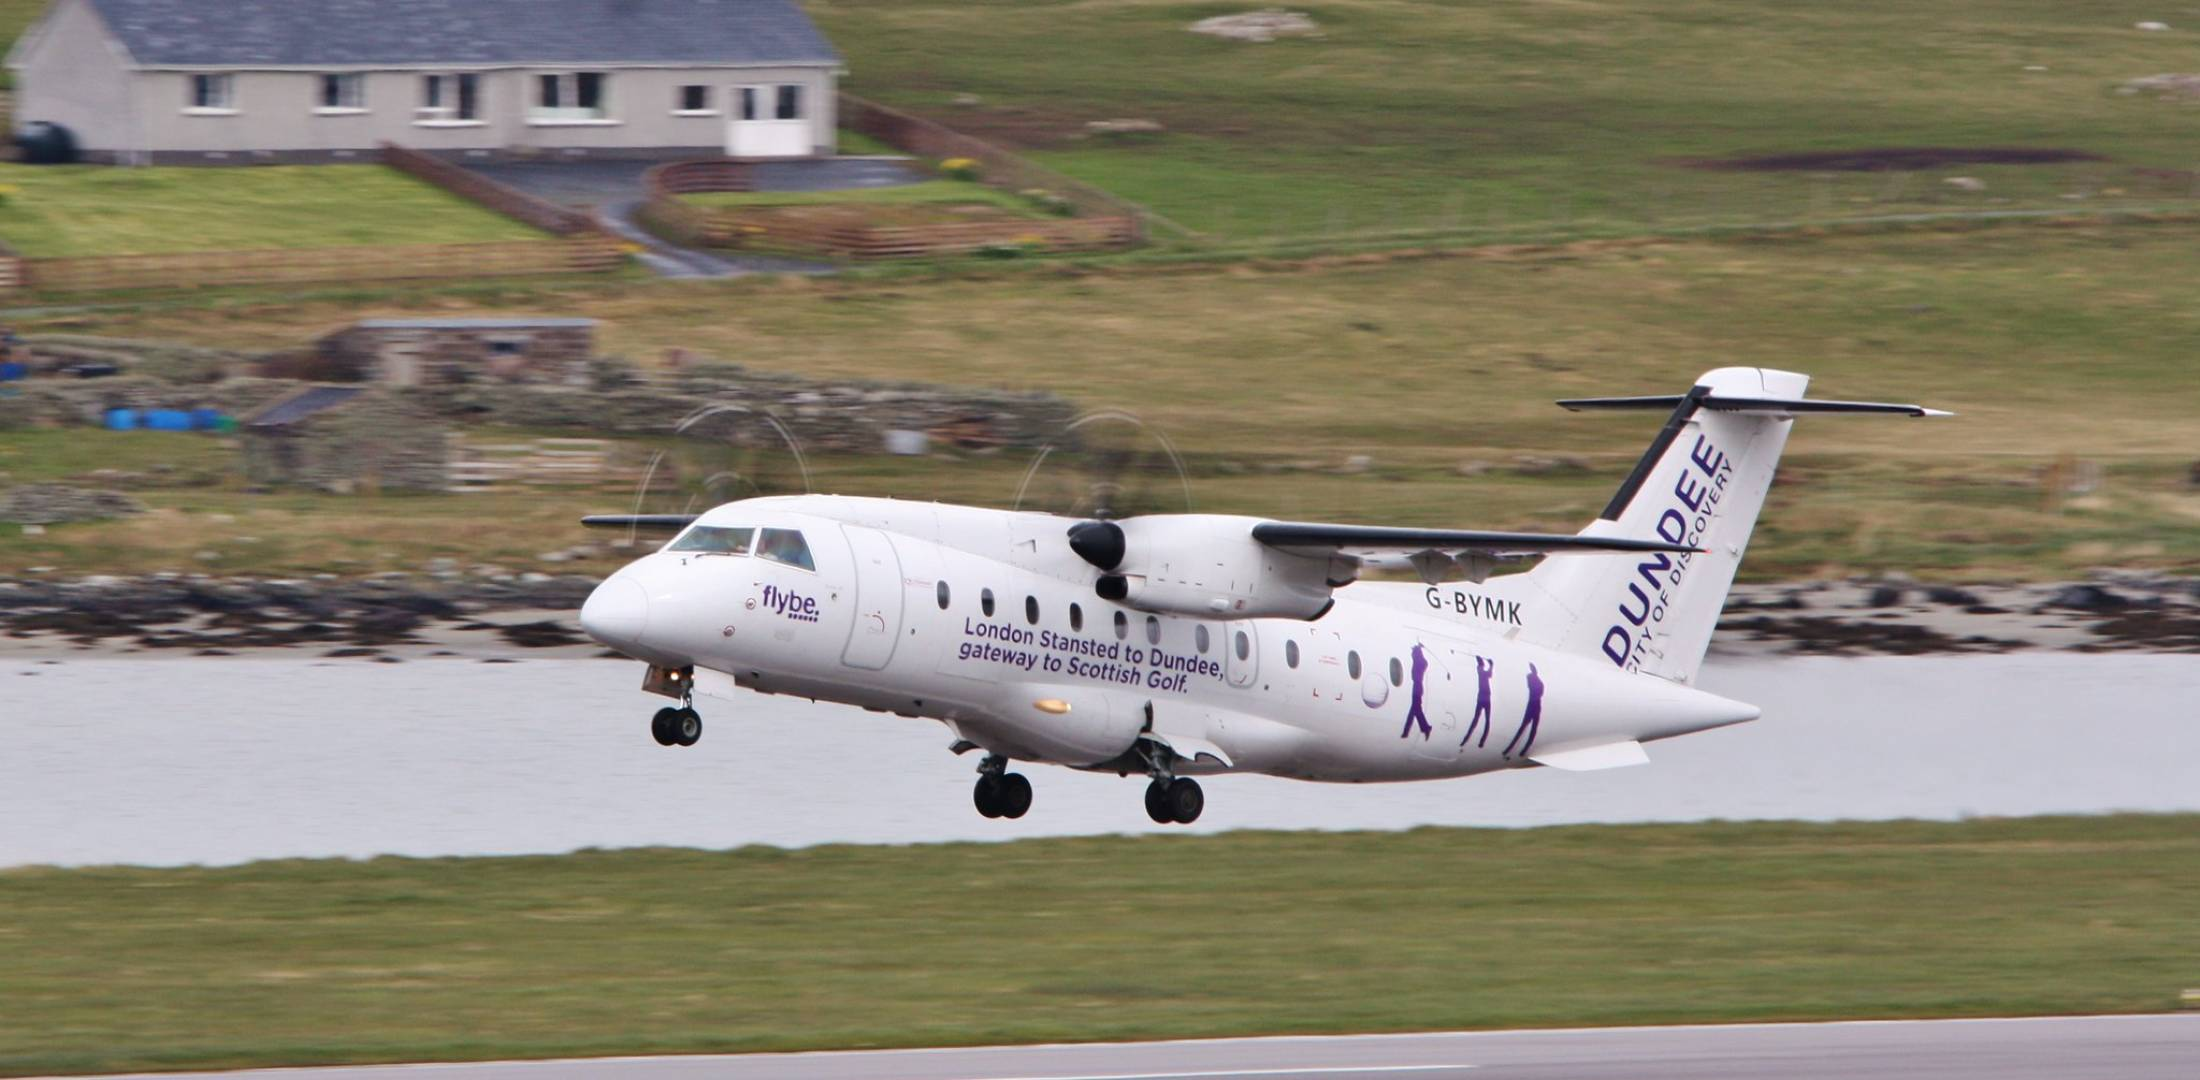 New OEM in Germany To Build Upgrade of the Dornier 328 | Air